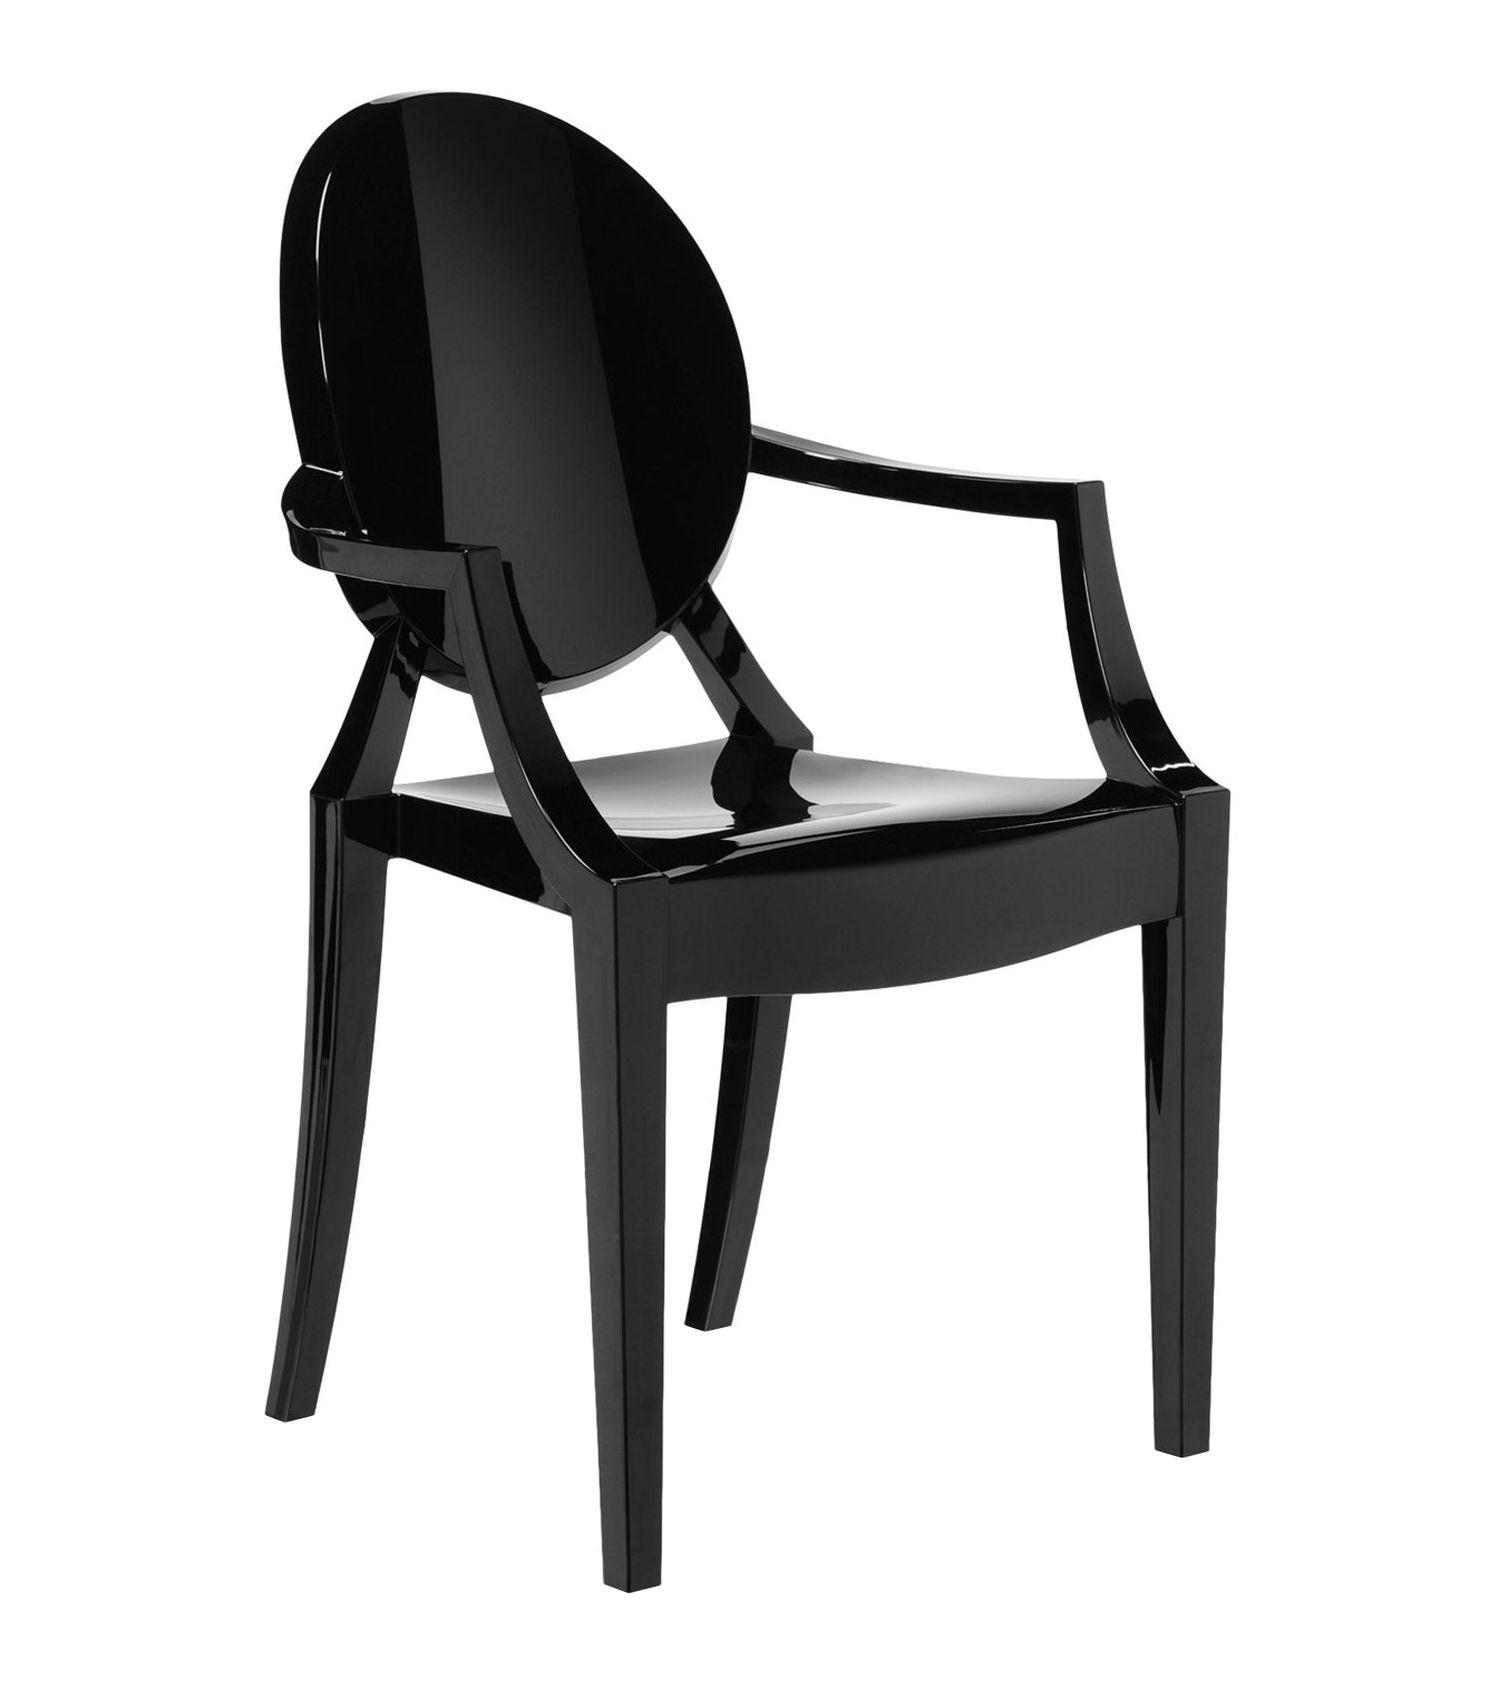 kartell louis ghost chair by philippe starck chairs chairs